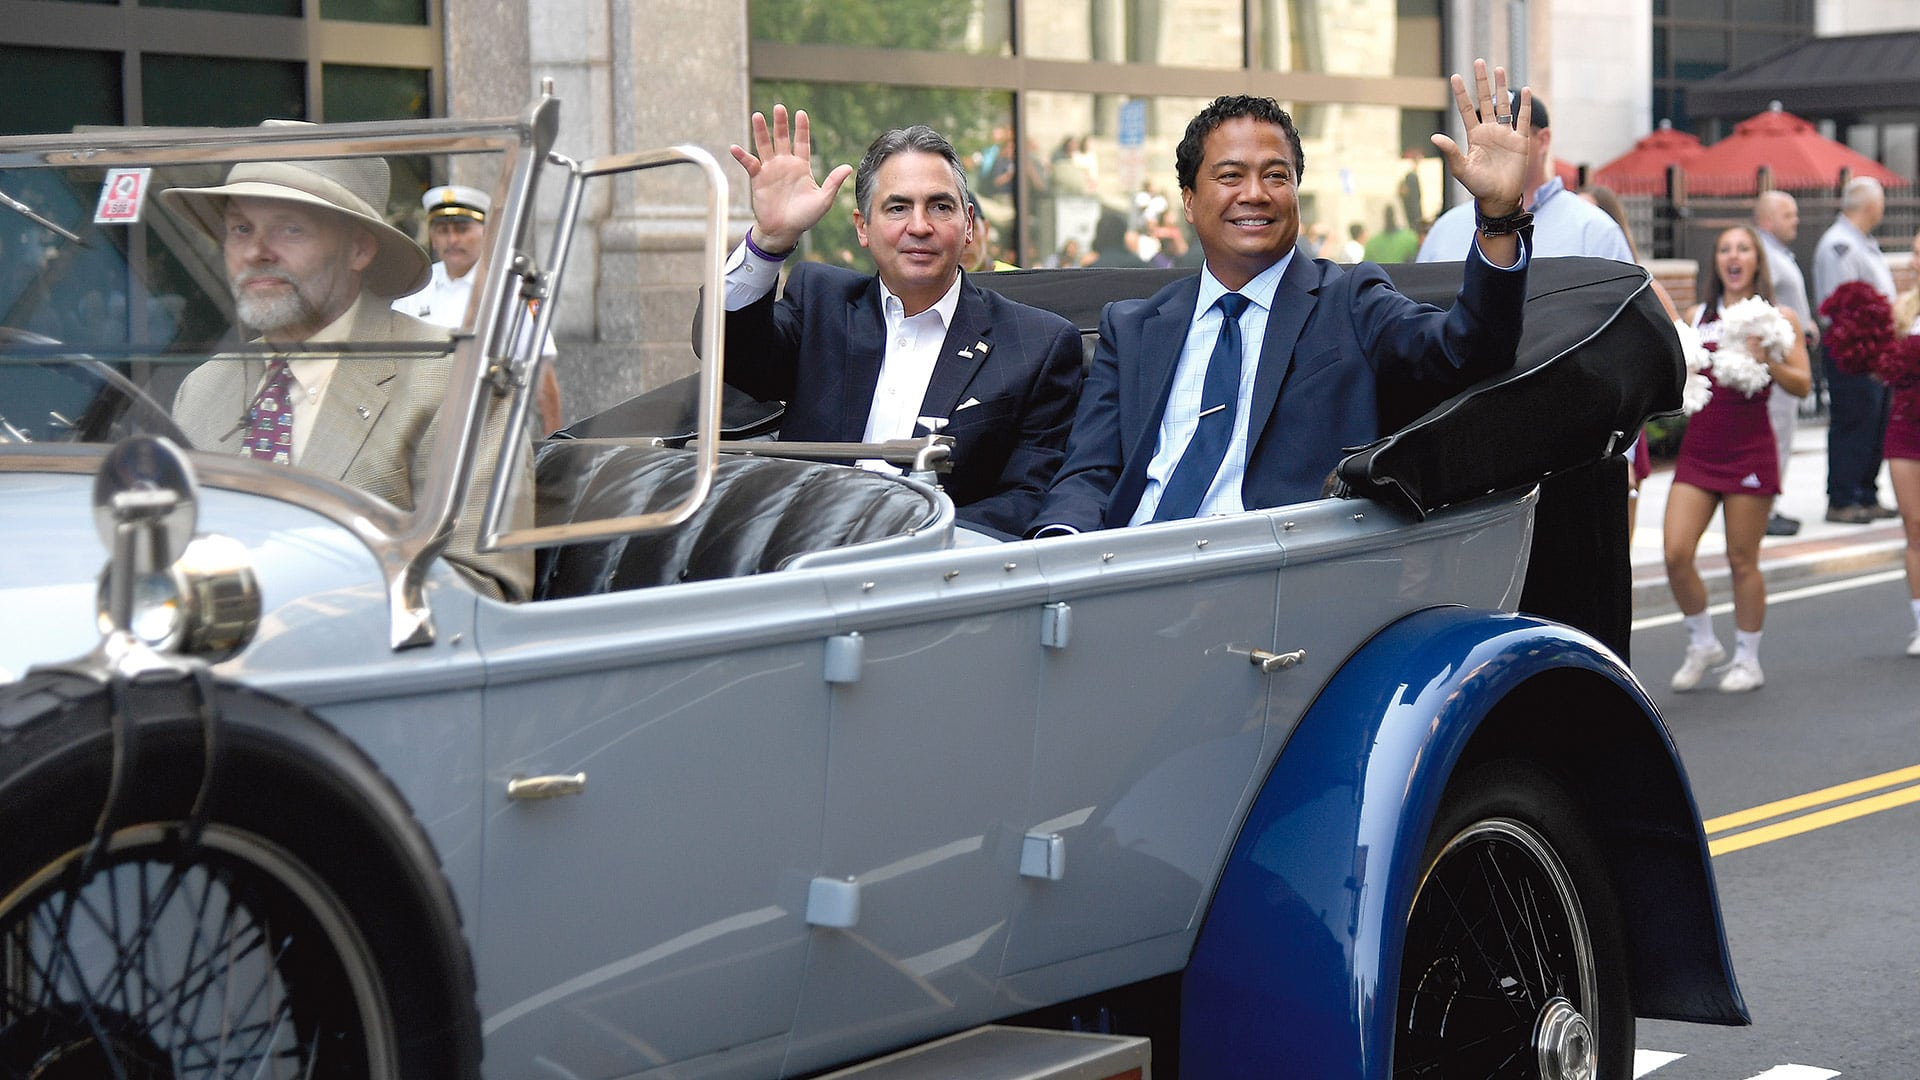 Mike Mathis and Springfield Mayor Domenic Sarno ride in style on opening day of MGM Springfield